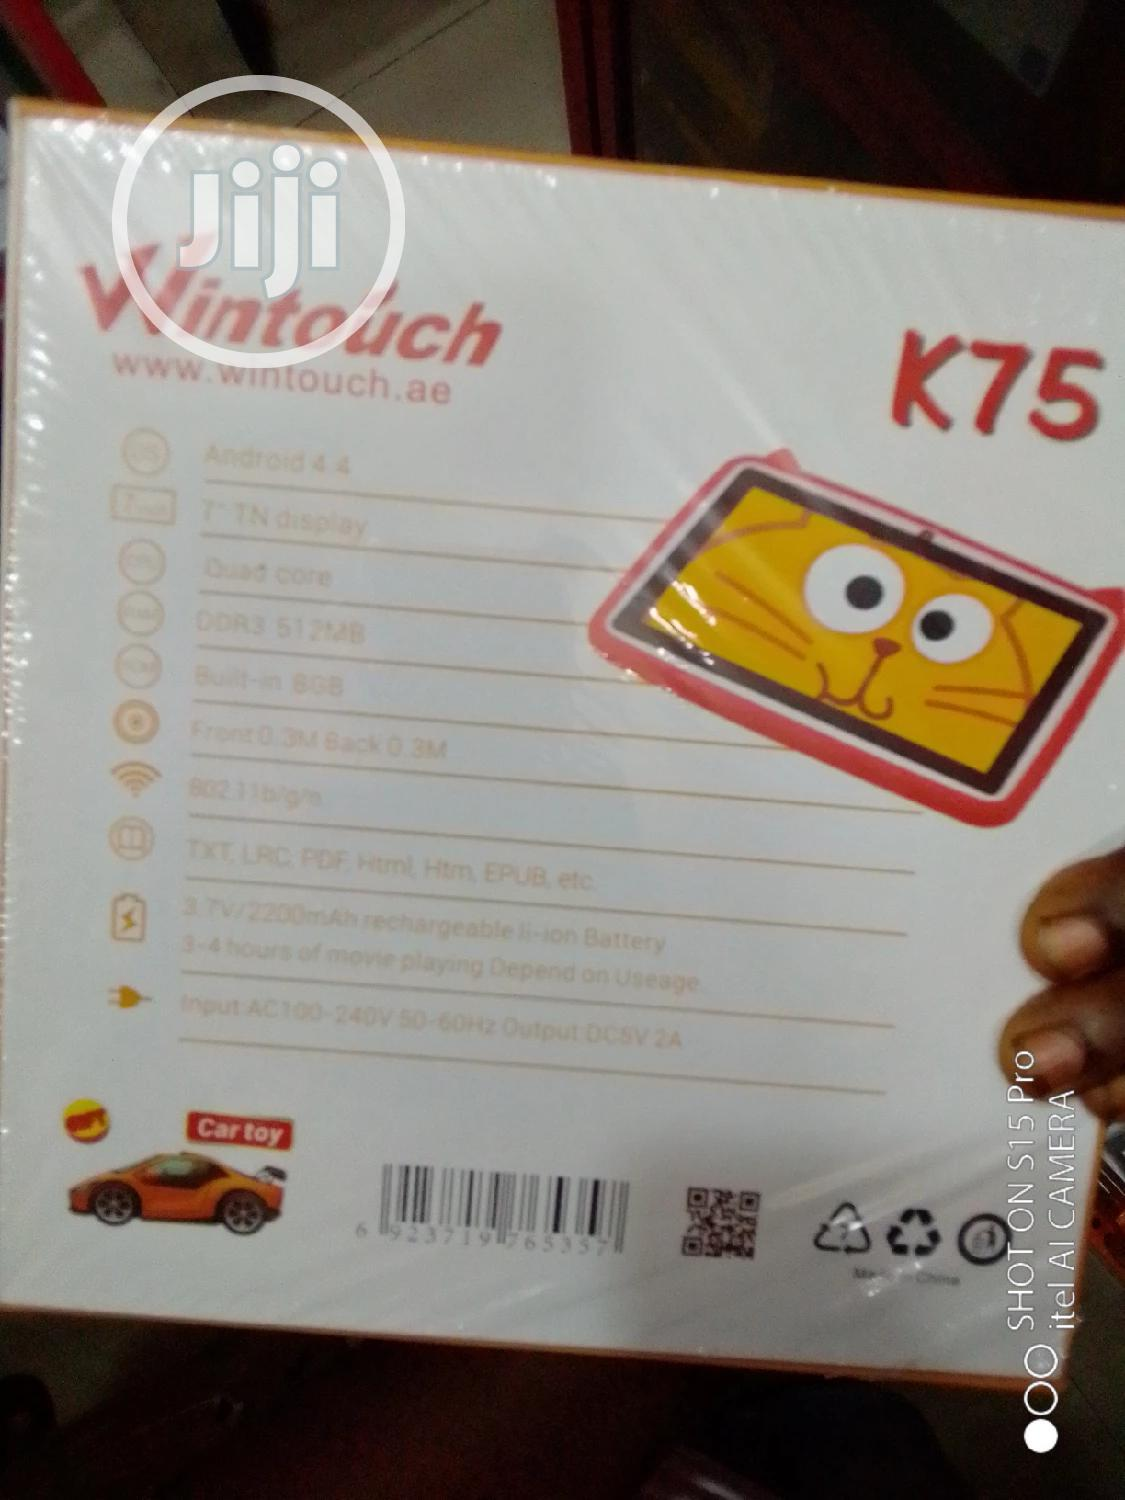 New Wintouch K75 8 GB   Toys for sale in Agege, Lagos State, Nigeria